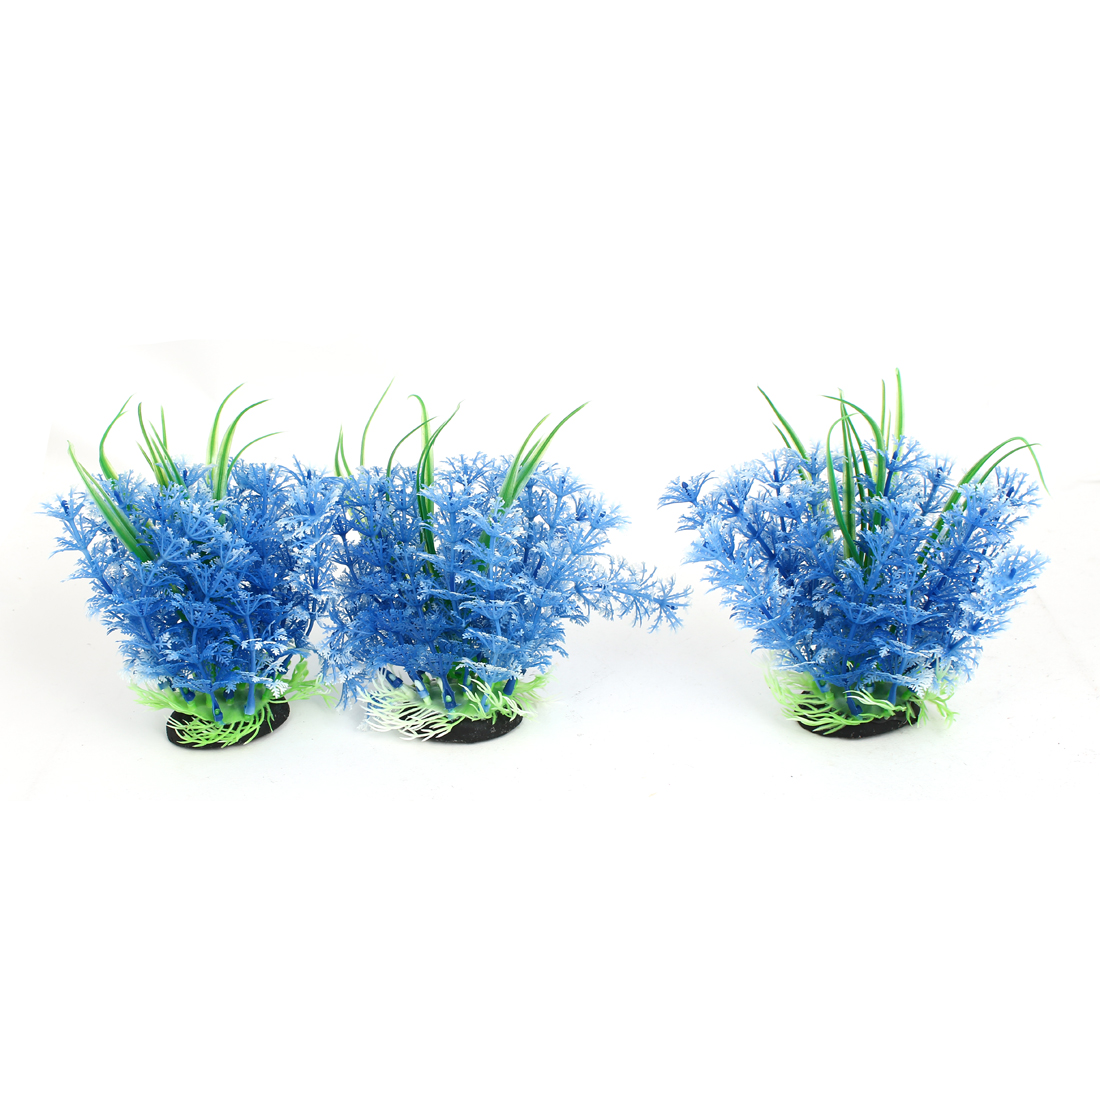 Aquarium Fish Tank Artificial Fake Water Plant Grass Decor Ornament Blue 3Pcs